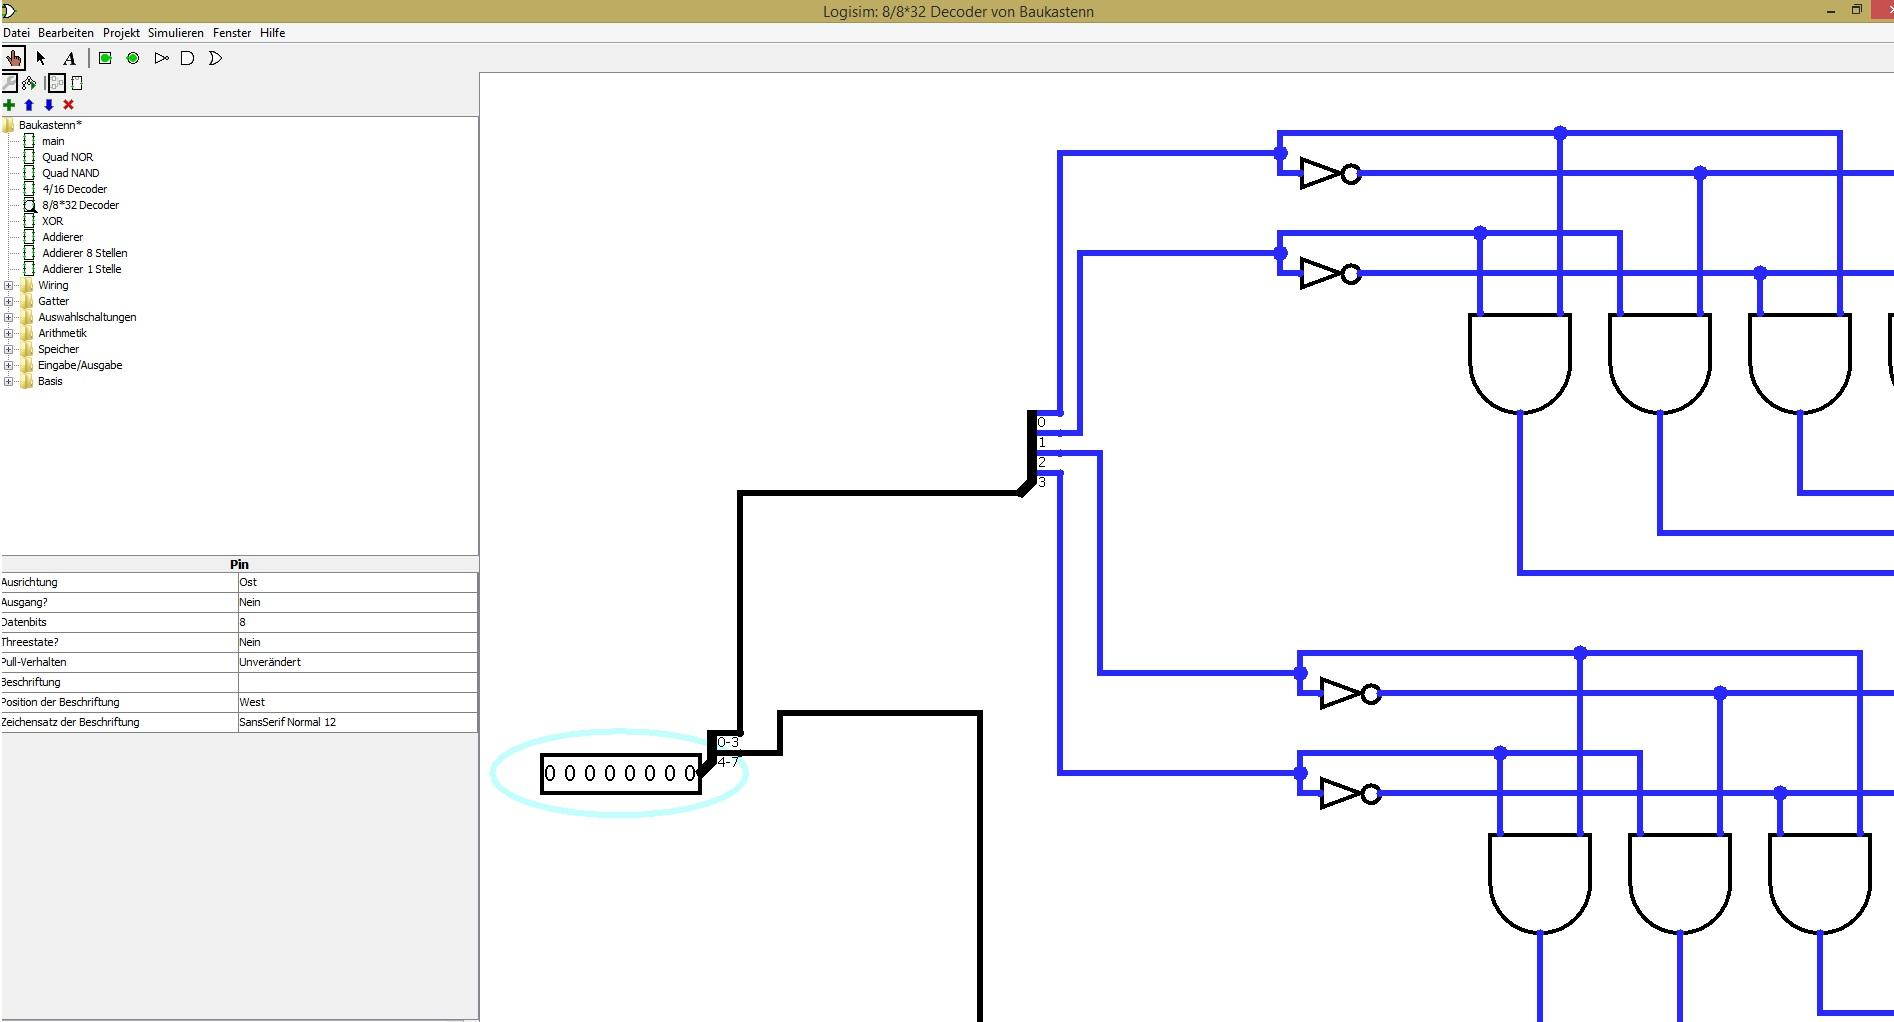 Logisim Bugs 135 Every Conection Turns Blue From One Moment The 4 To 16 Decoder Logic Diagram Problem 1